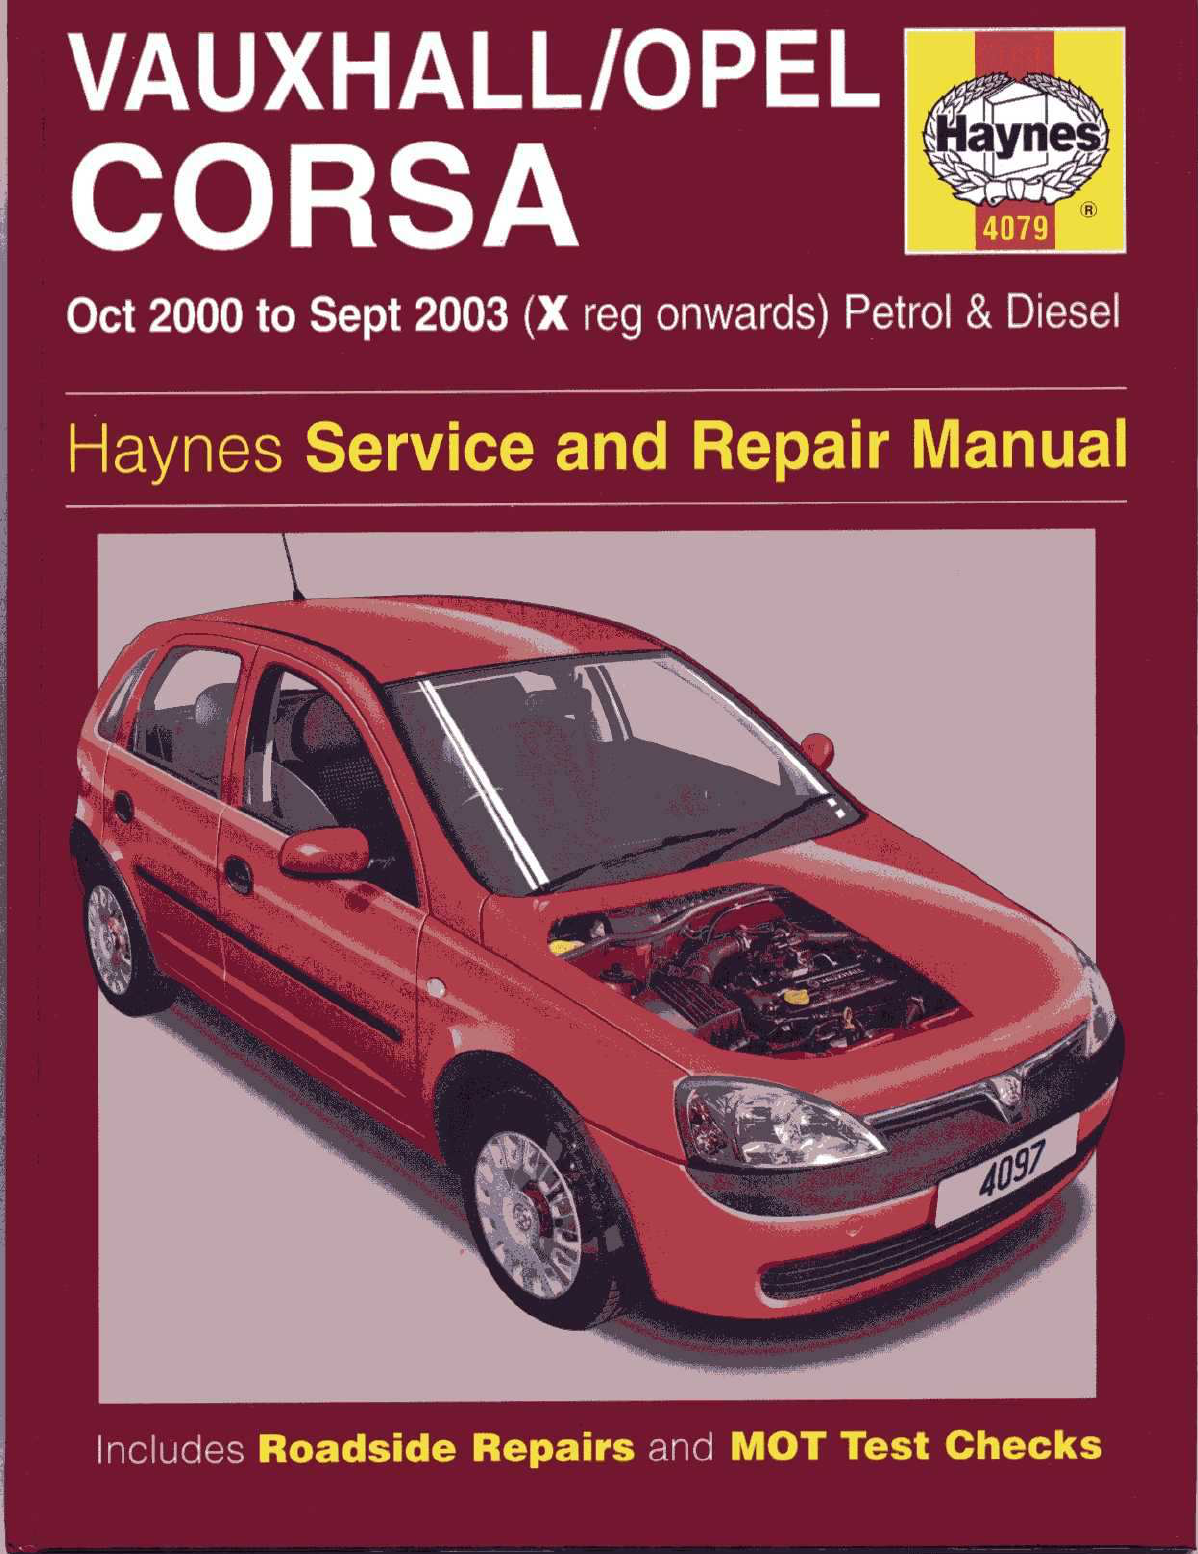 opel corsa 2000 2003 workshop manual pdf rh manuals co opel corsa manual de instrucciones opel corsa manual pdf 1998